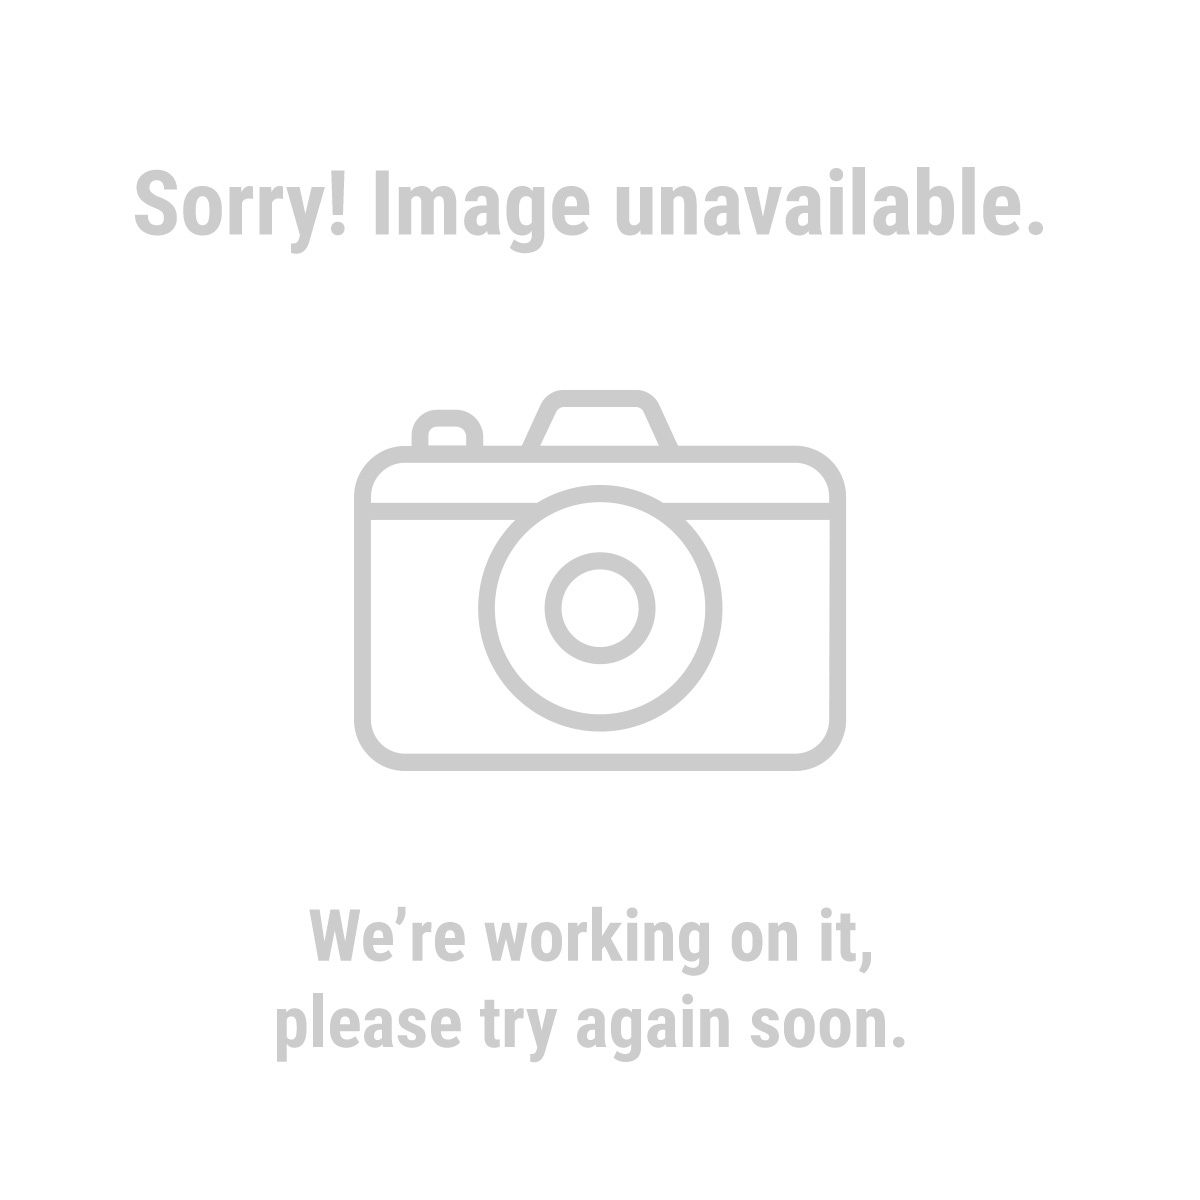 Gordon® 7345 Combination Sharpening Stone